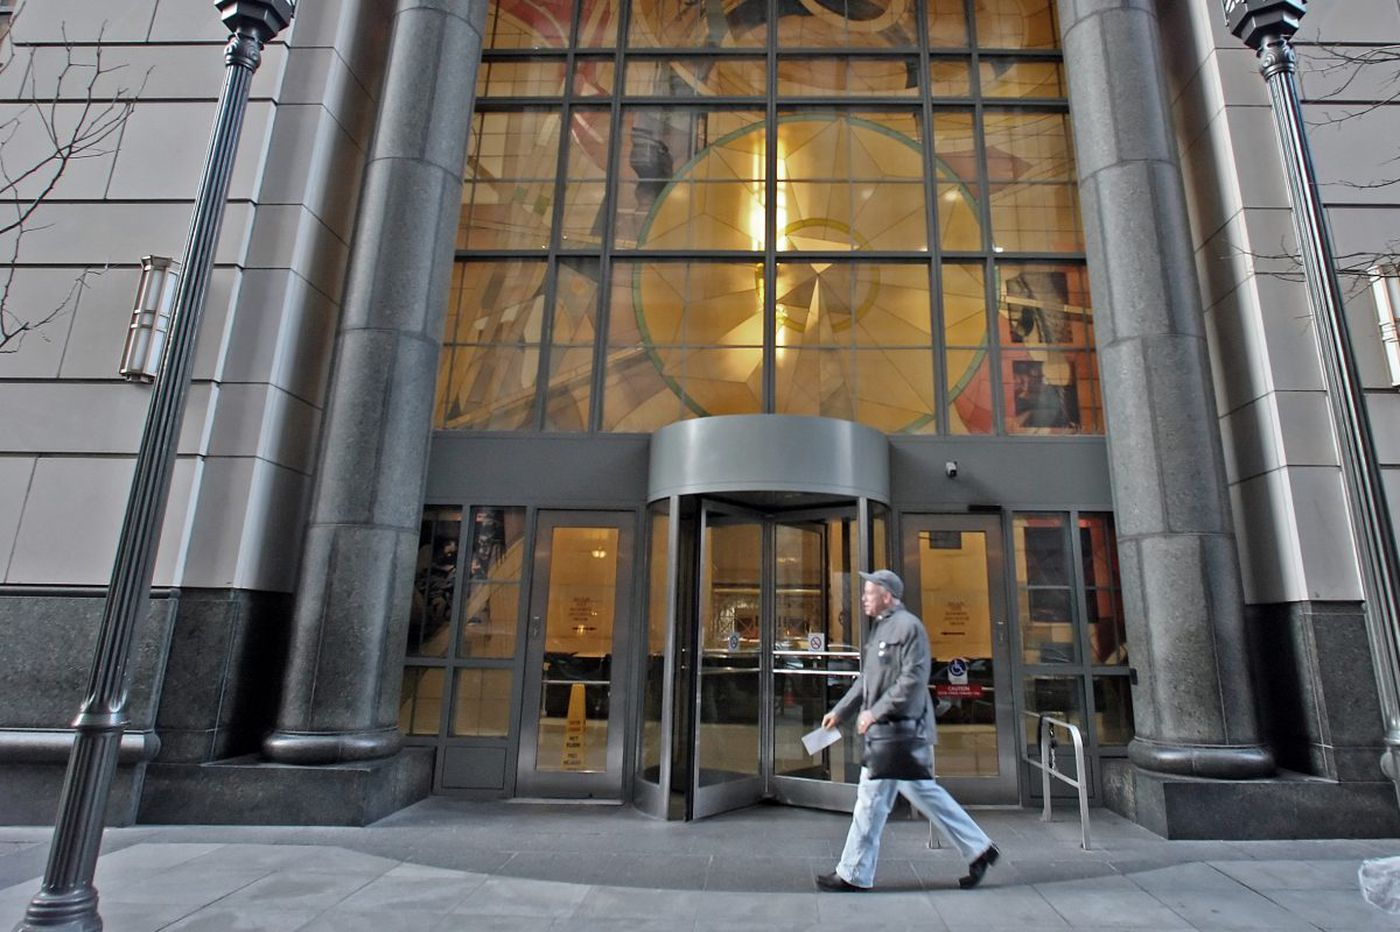 Two officers settle lawsuit over injuries in 2013 elevator accident at Criminal Justice Center